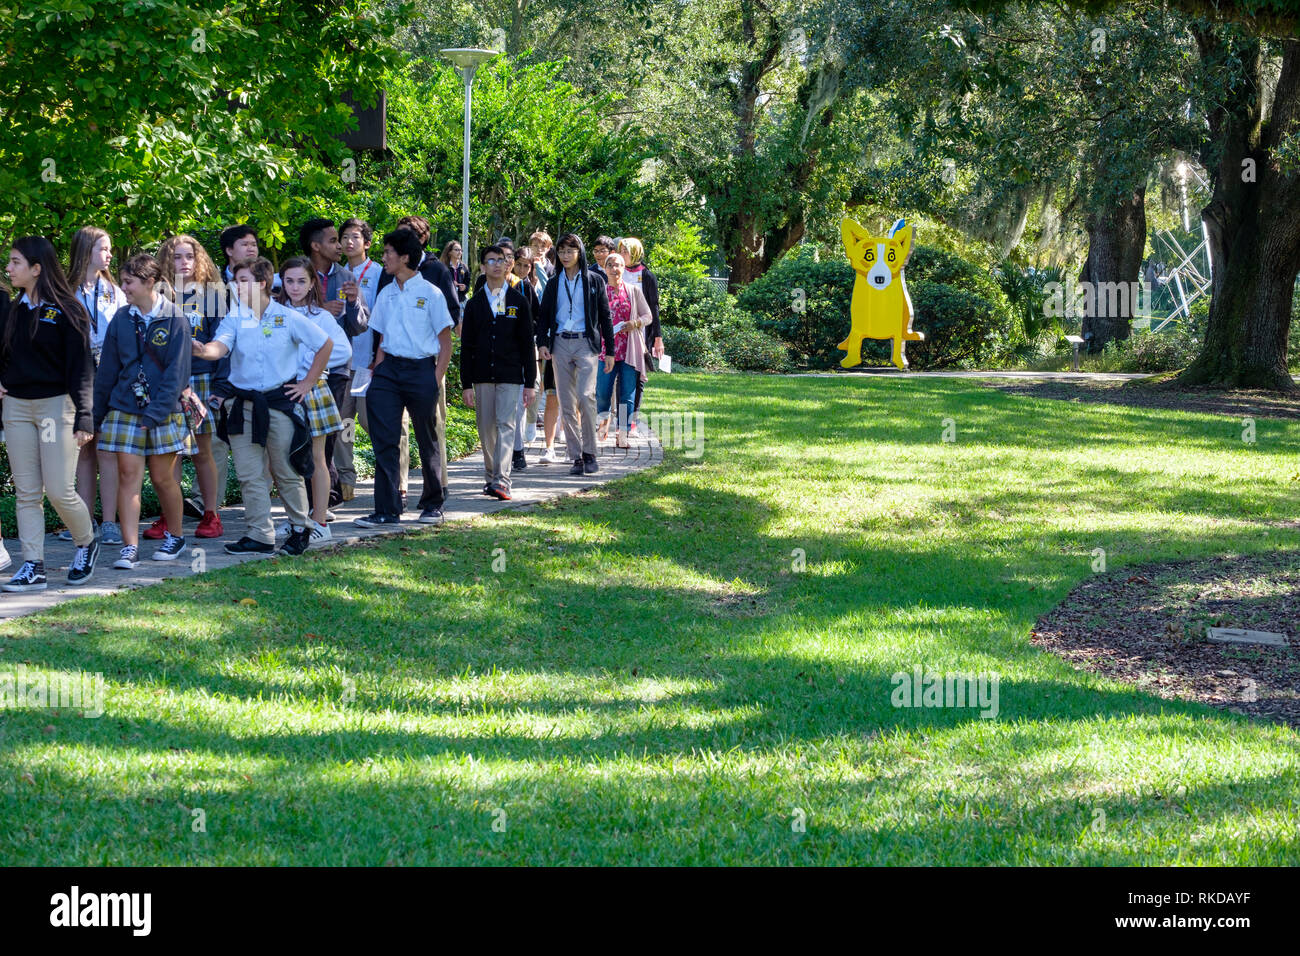 Kids, students on school trip to New Orleans Sculpture Garden, George Rodrigue We Stand Together sculpture, New Orleans, Louisiana, USA - Stock Image